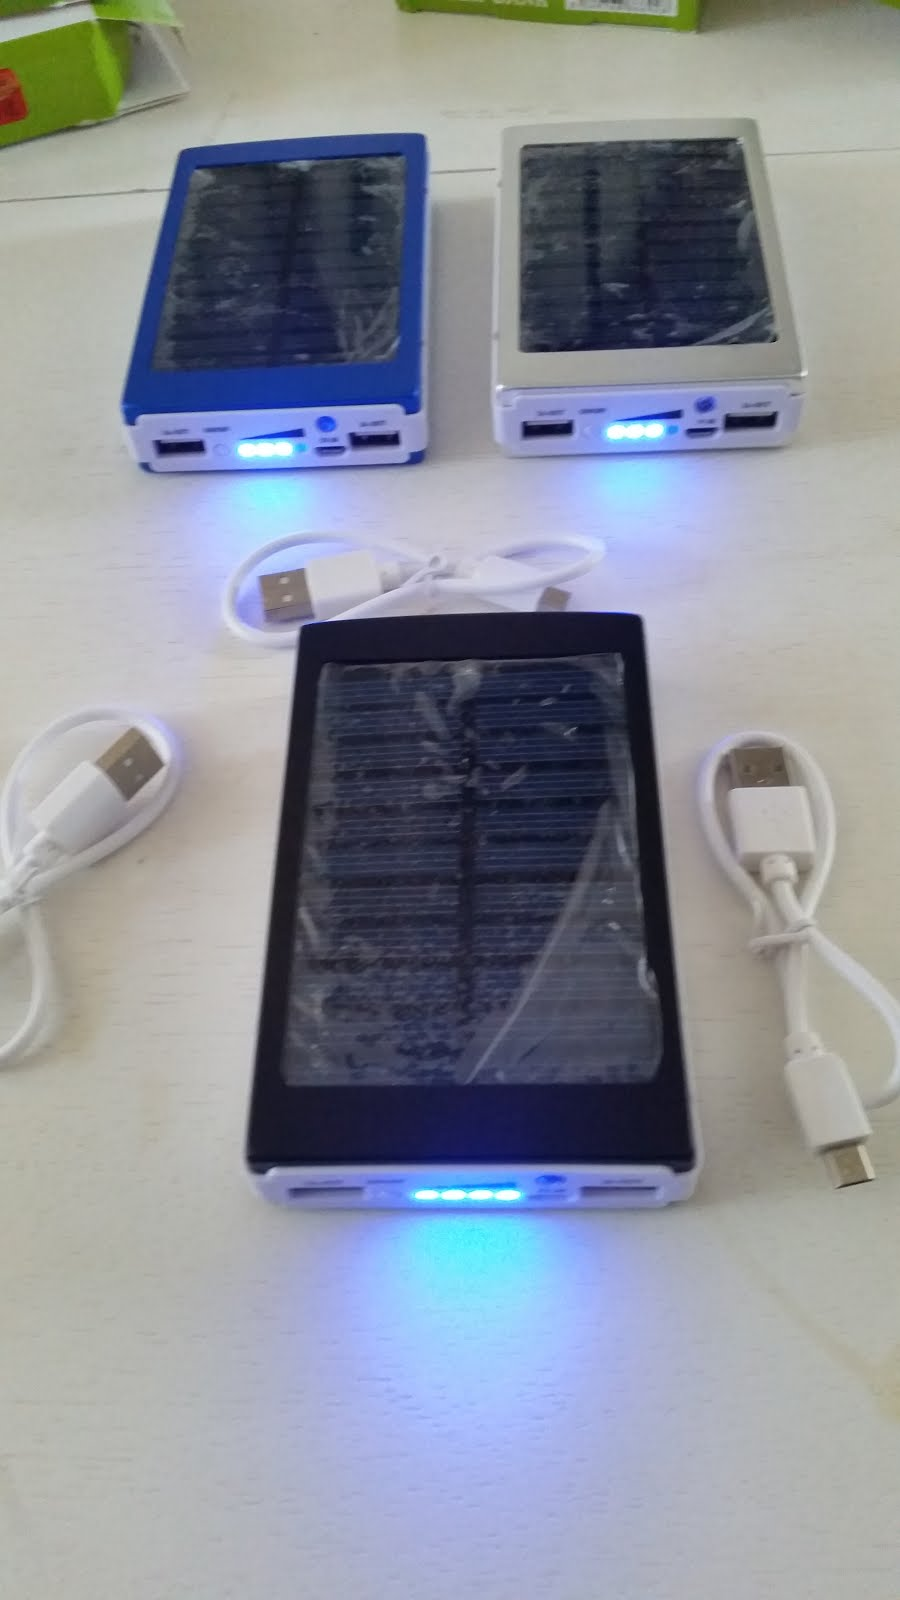 chargeur solaire 2 usb photovoltaique 30000 mah telephone tablette mp3 gadgets ebay. Black Bedroom Furniture Sets. Home Design Ideas